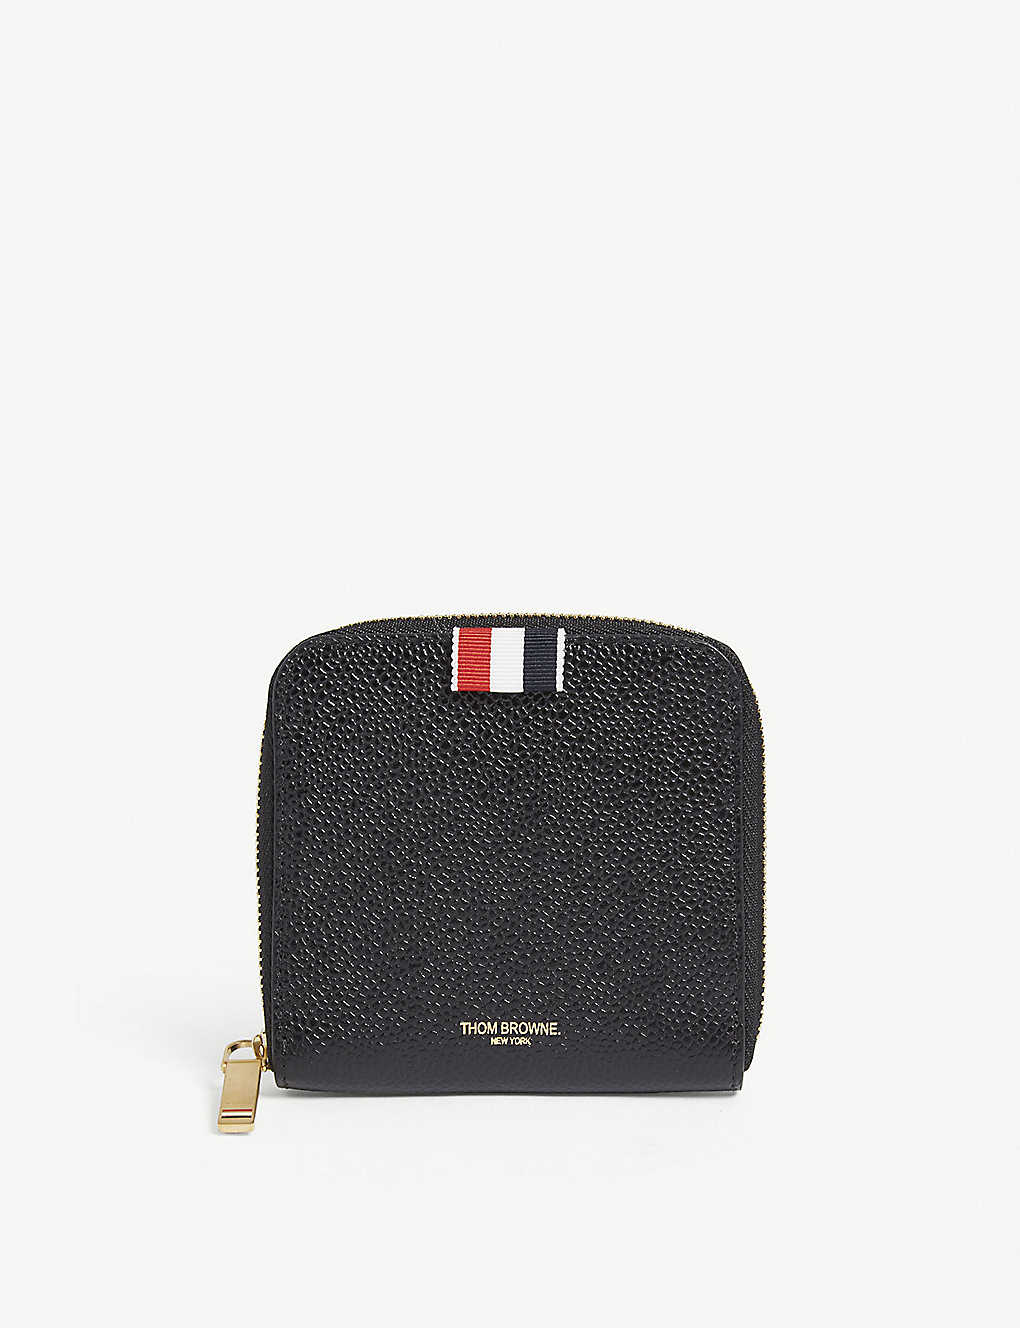 a7720fe3a65b THOM BROWNE - Pebbled leather zip-around wallet | Selfridges.com